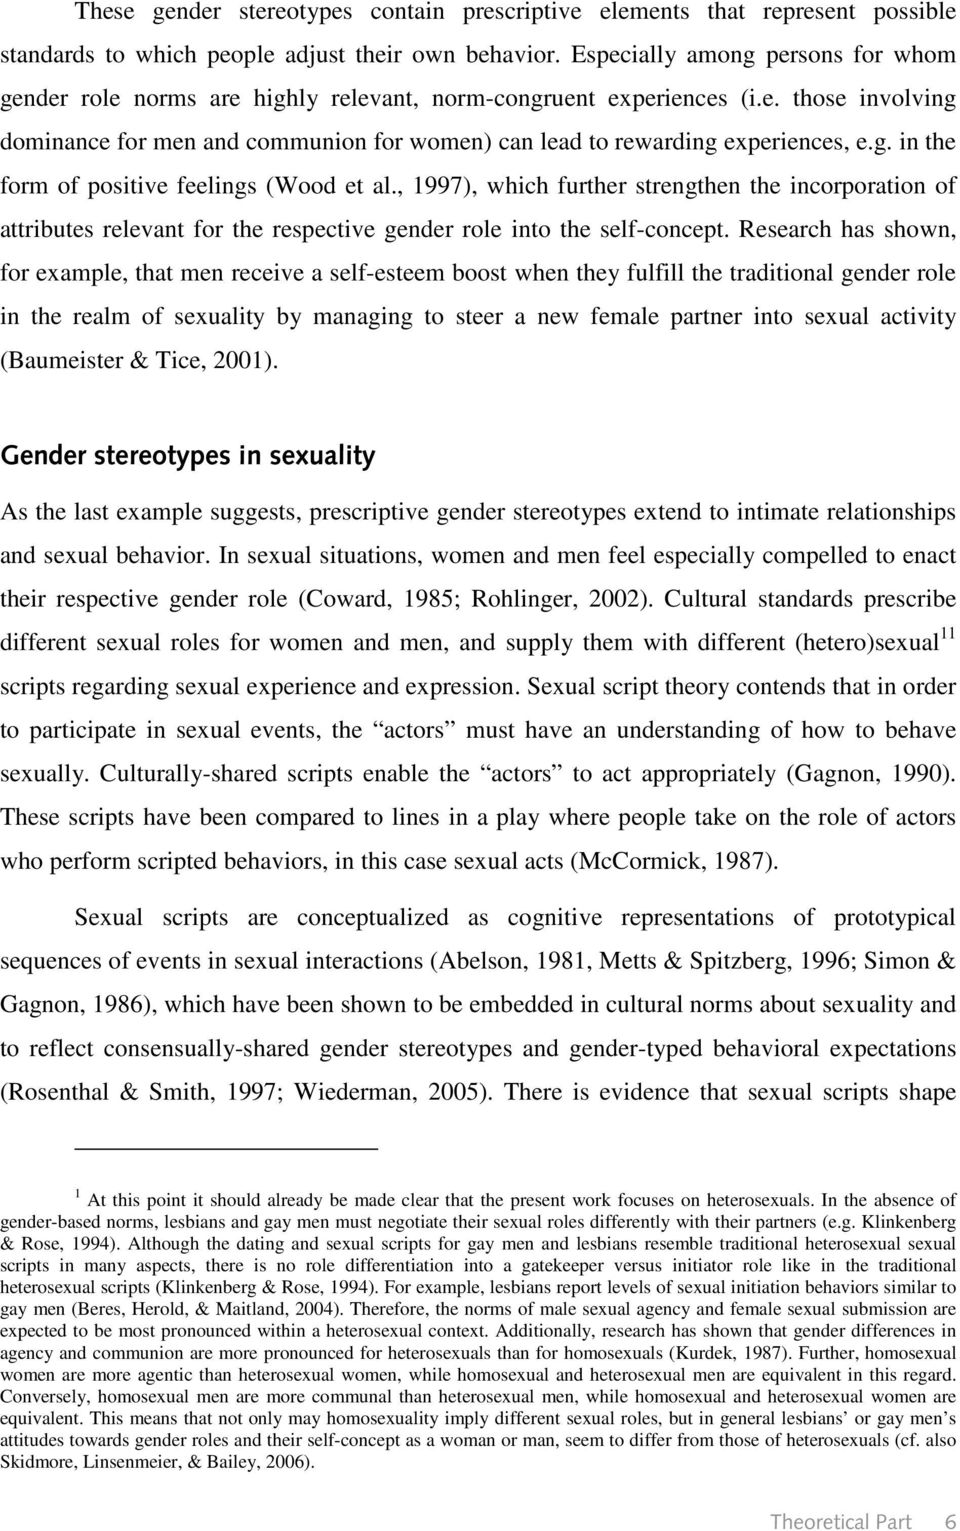 g. in the form of positive feelings (Wood et al., 1997), which further strengthen the incorporation of attributes relevant for the respective gender role into the self-concept.